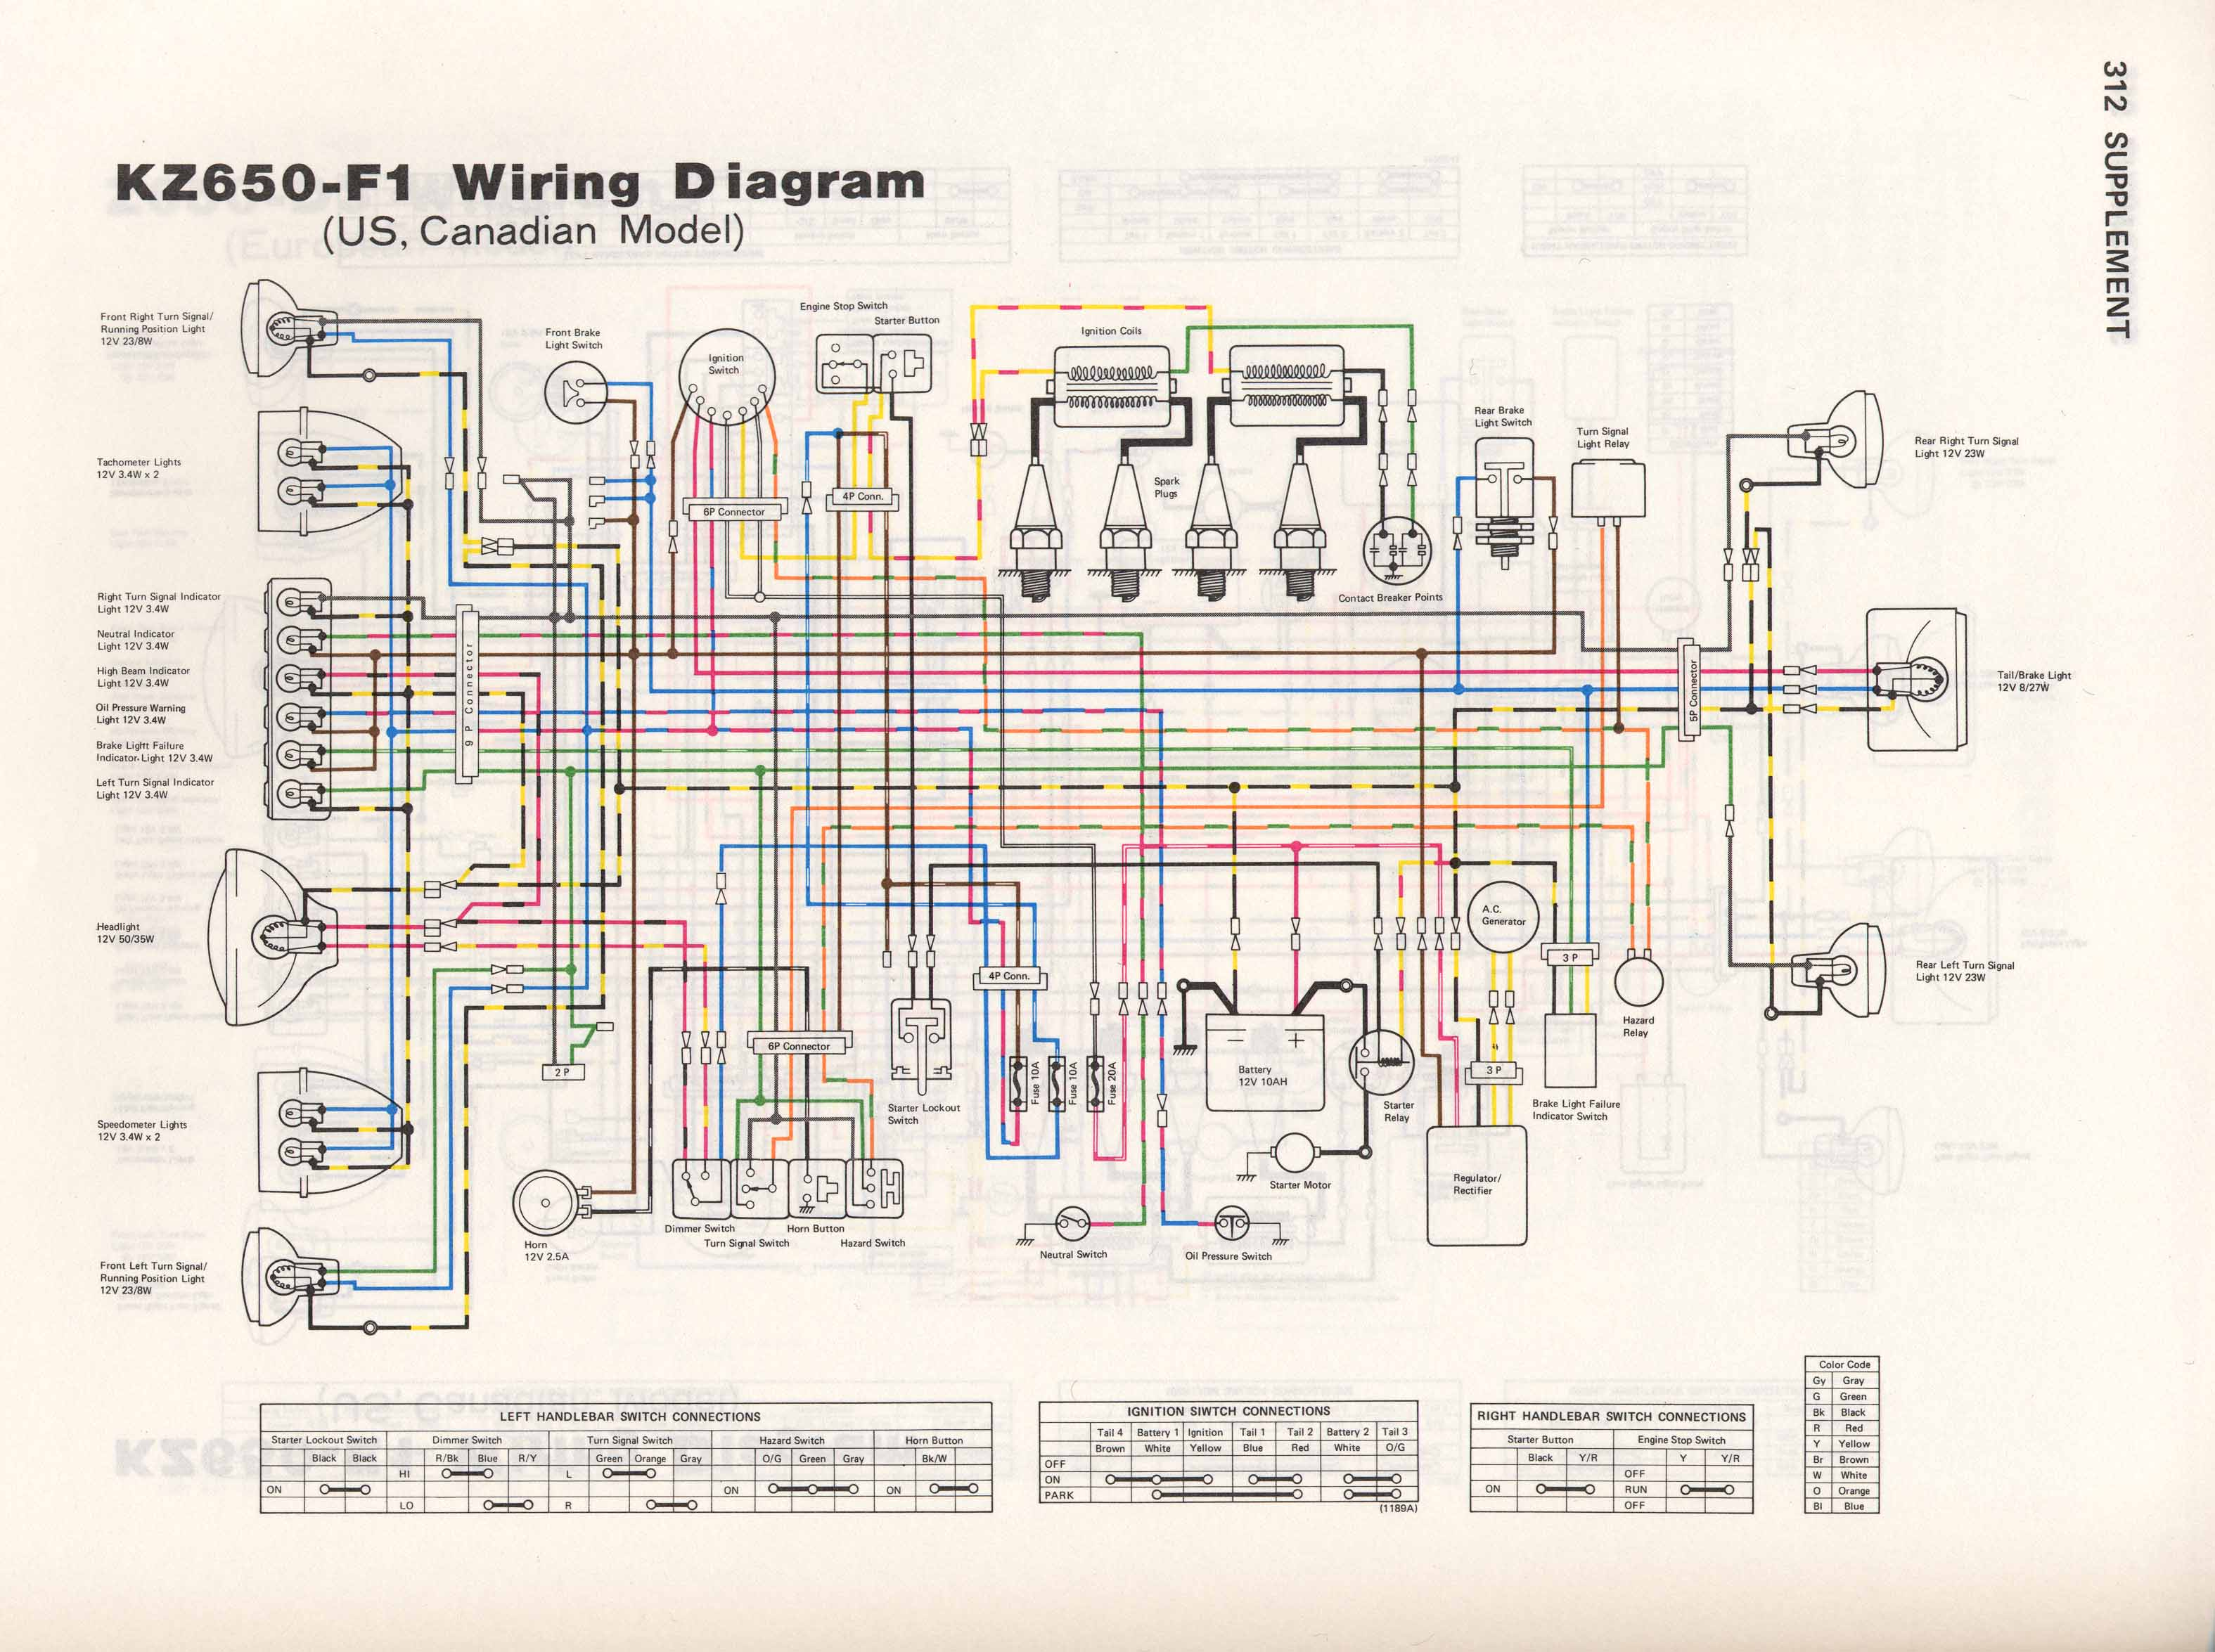 KZ650 F1 kz650 info wiring diagrams 1980 kawasaki 440 ltd wiring diagram at bakdesigns.co